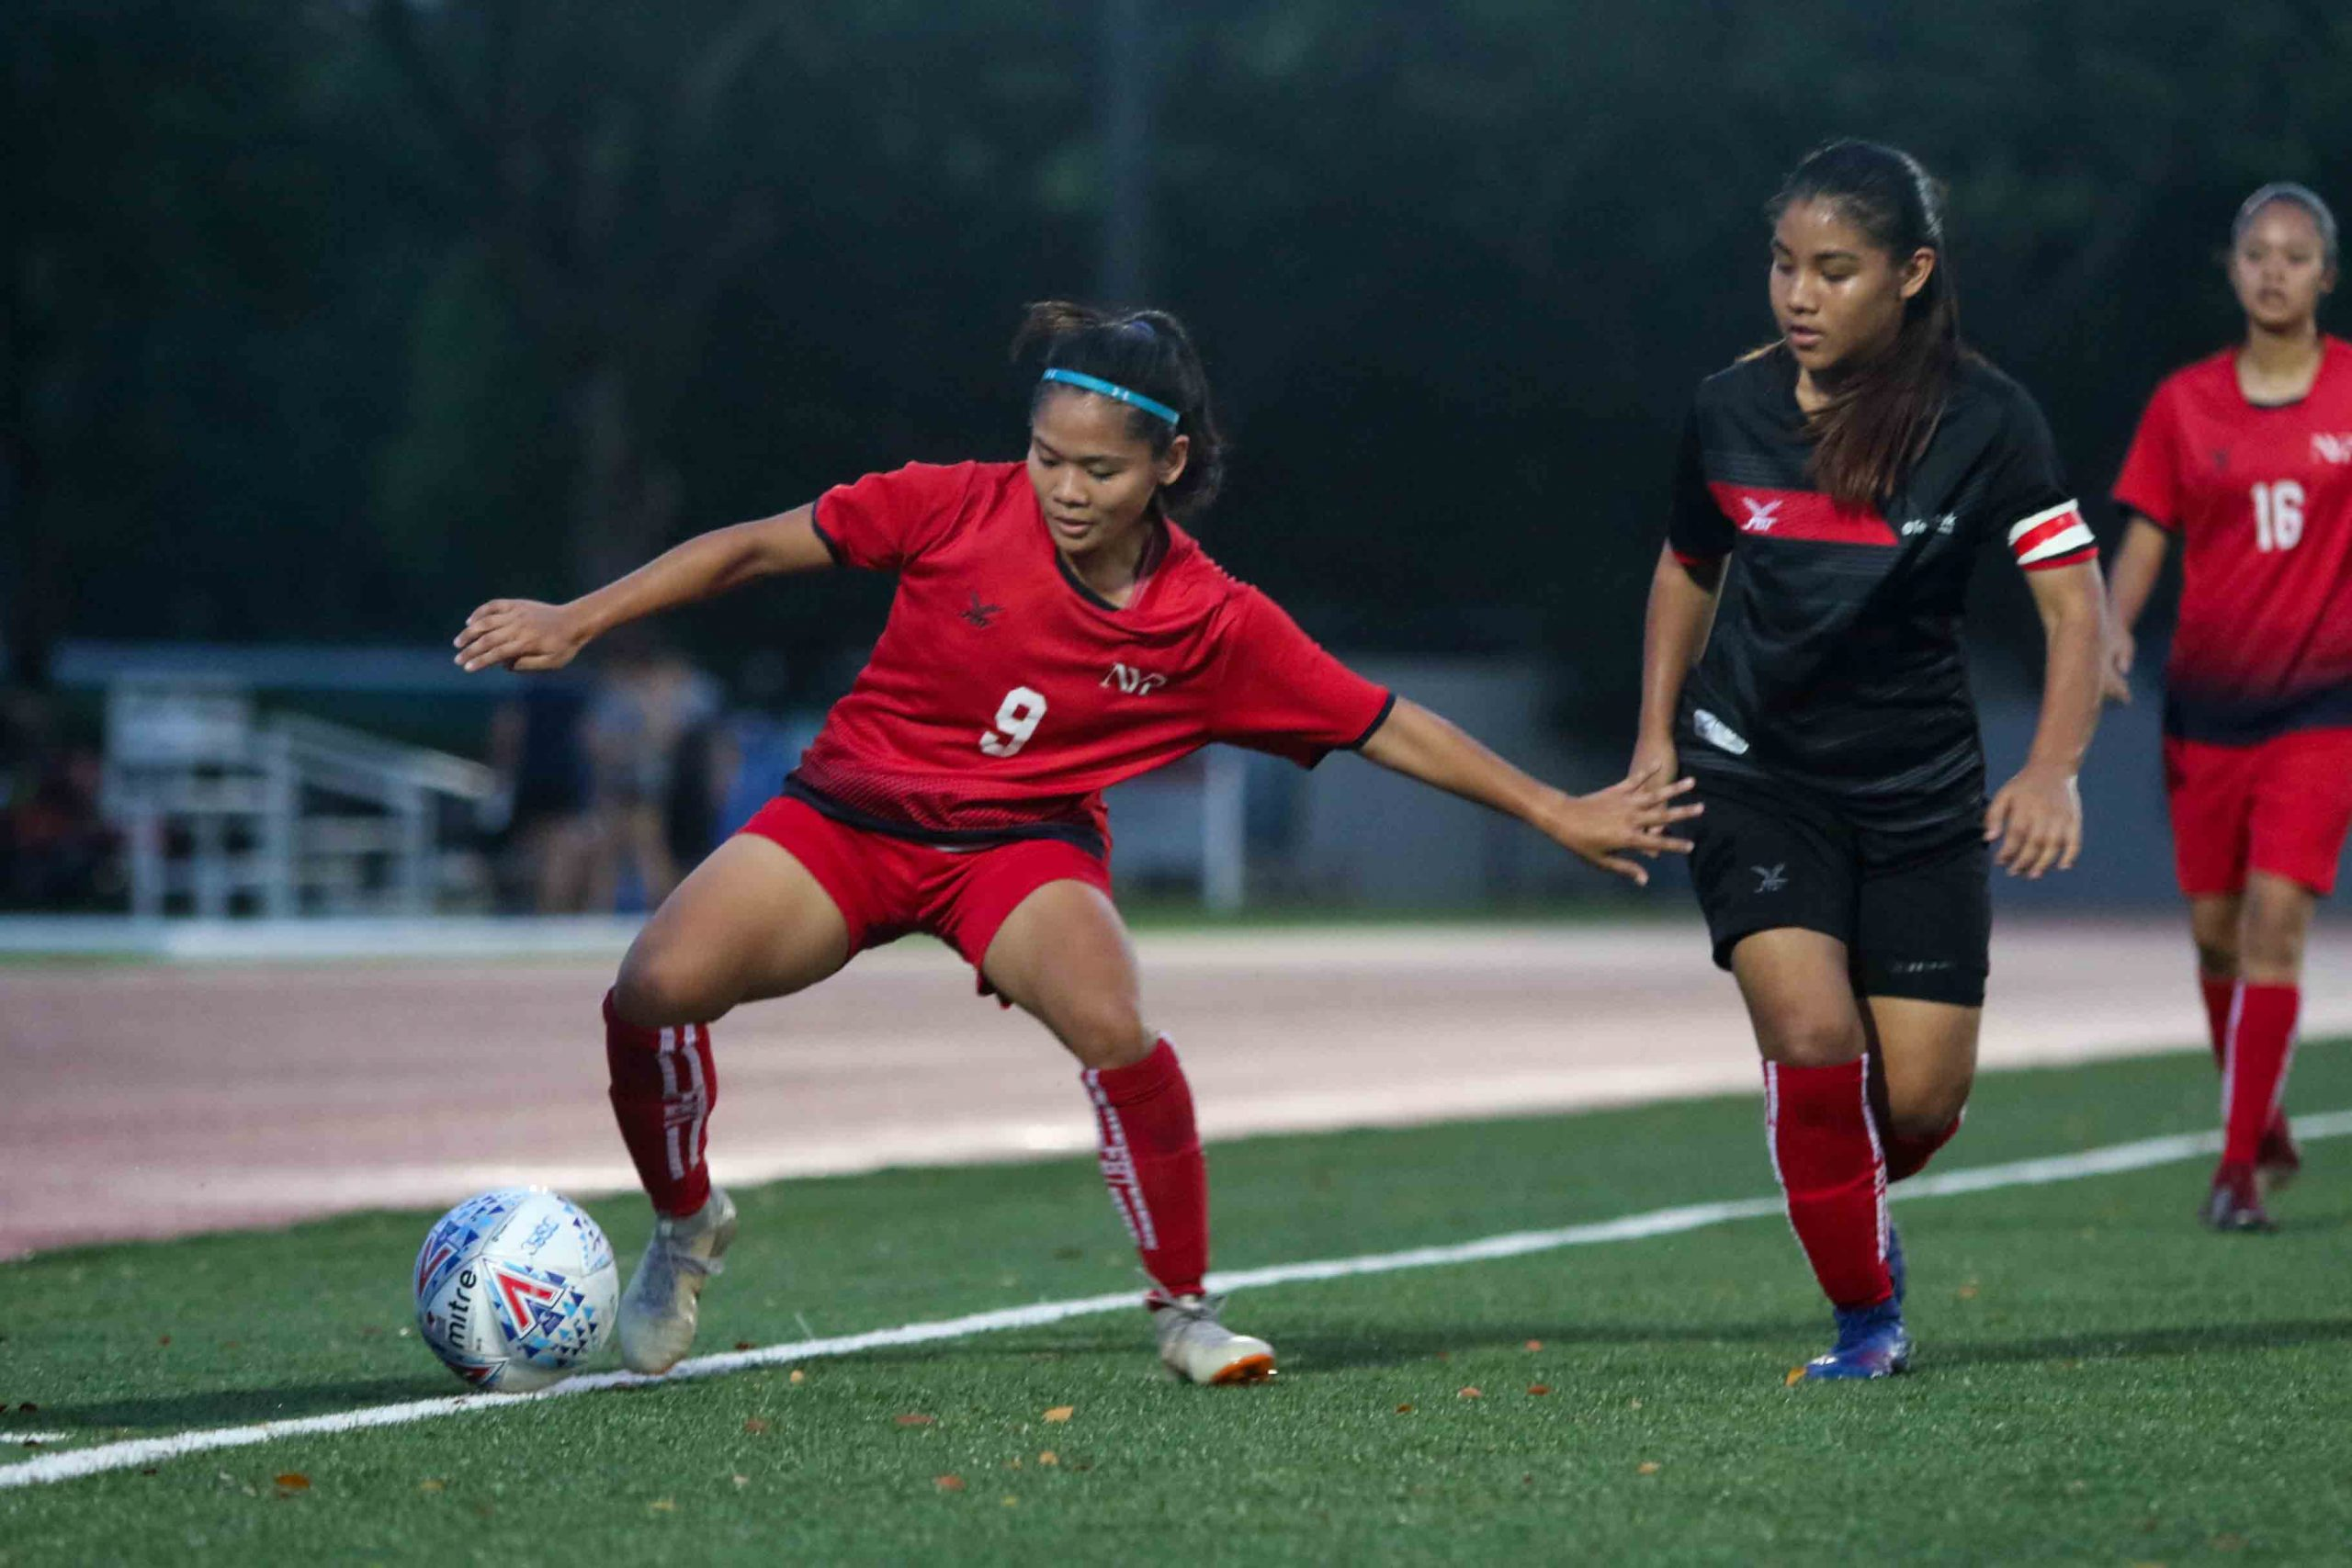 Nur Shaahidah (NYP #9) stretches to keep the ball in play. (Photo 3 © Clara Lau/Red Sports)